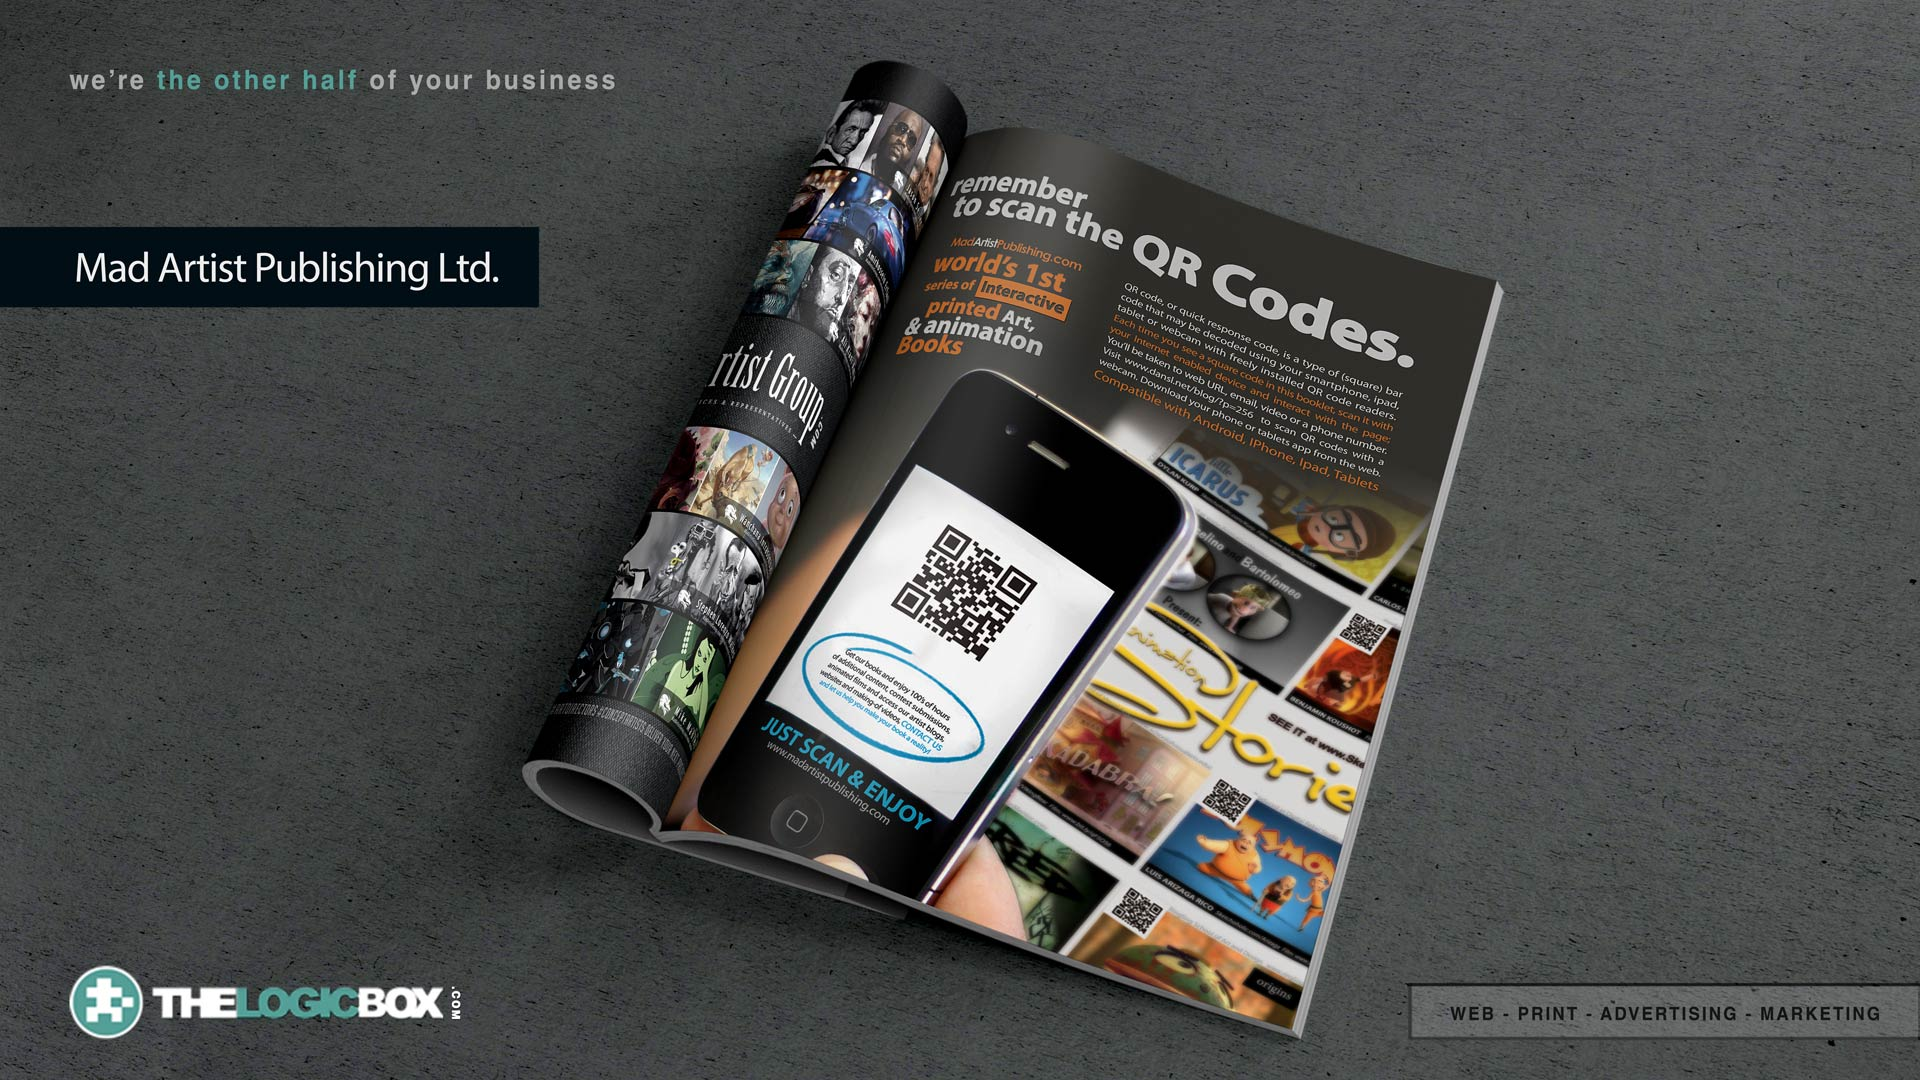 Mississauga Advertising - Oakville Web Design & Graphic Design  | The Logic Box